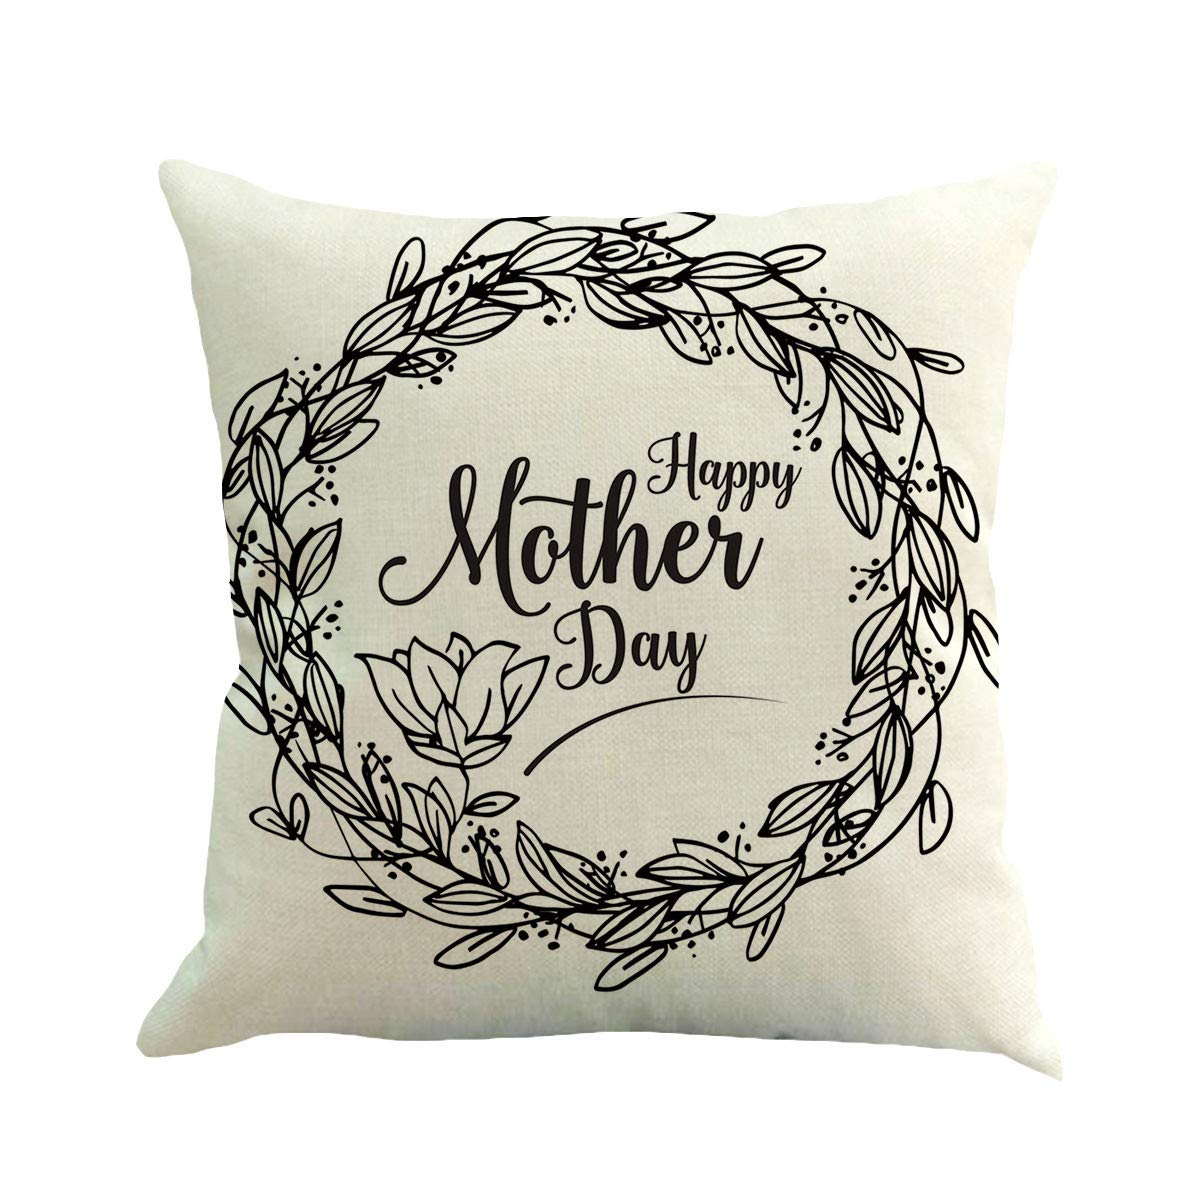 Weiliru Pillow Covers Throw Pillow Case Daily Decorations Sofa Throw Pillow Case Cushion Covers Zippered Pillowcase,Decor for Mother's Day